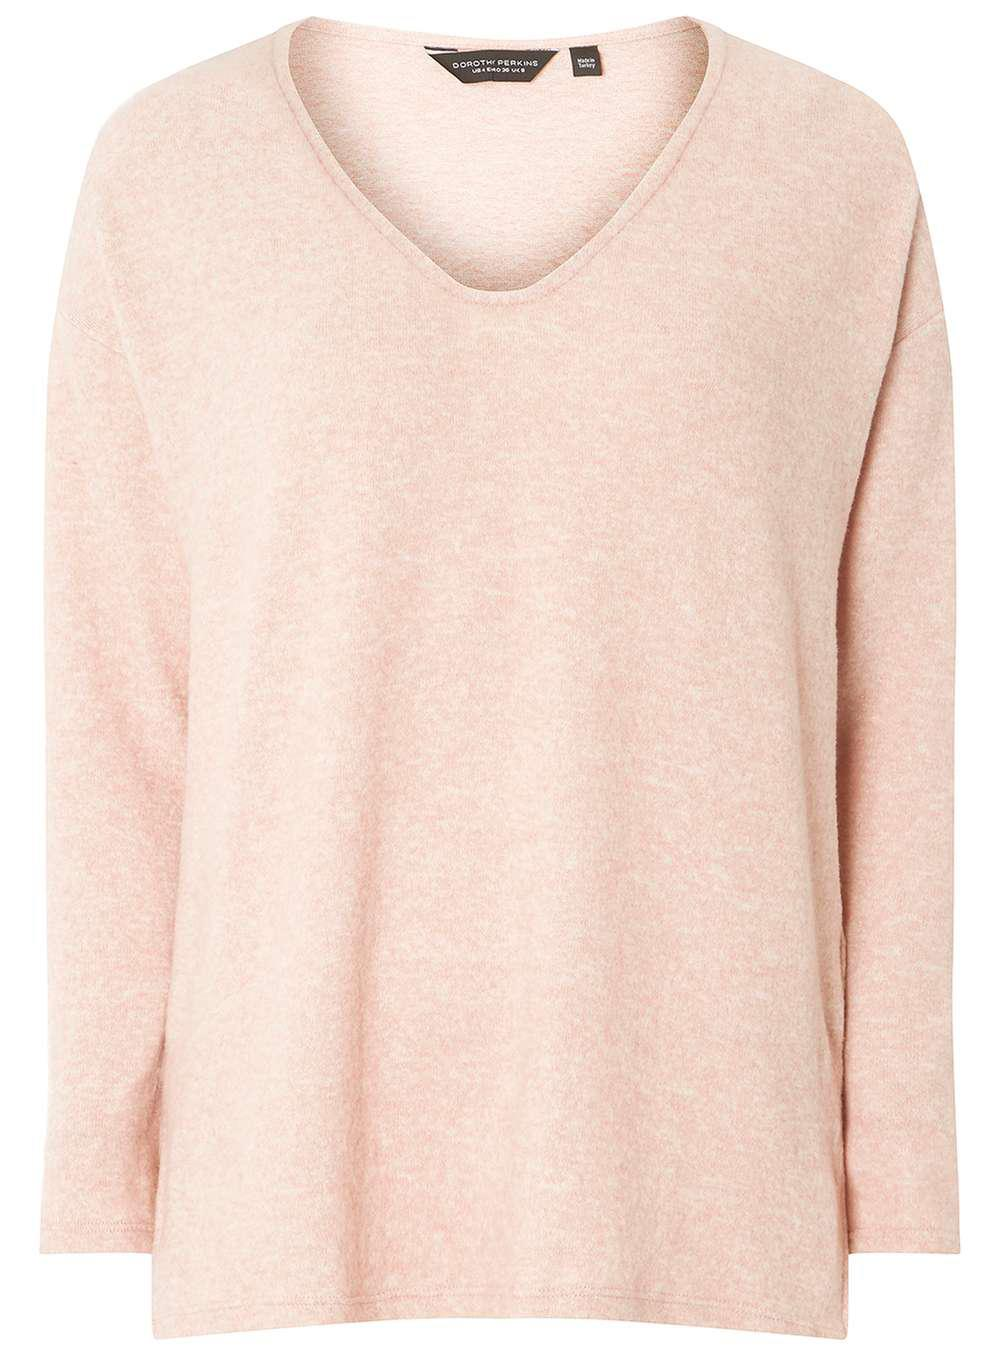 Womens V Neck Slouchy Long Sleeve Top Dorothy Perkins Buy Cheap Largest Supplier From China For Sale Best Wholesale Sale Online Clearance Browse Outlet Store Dvsextq